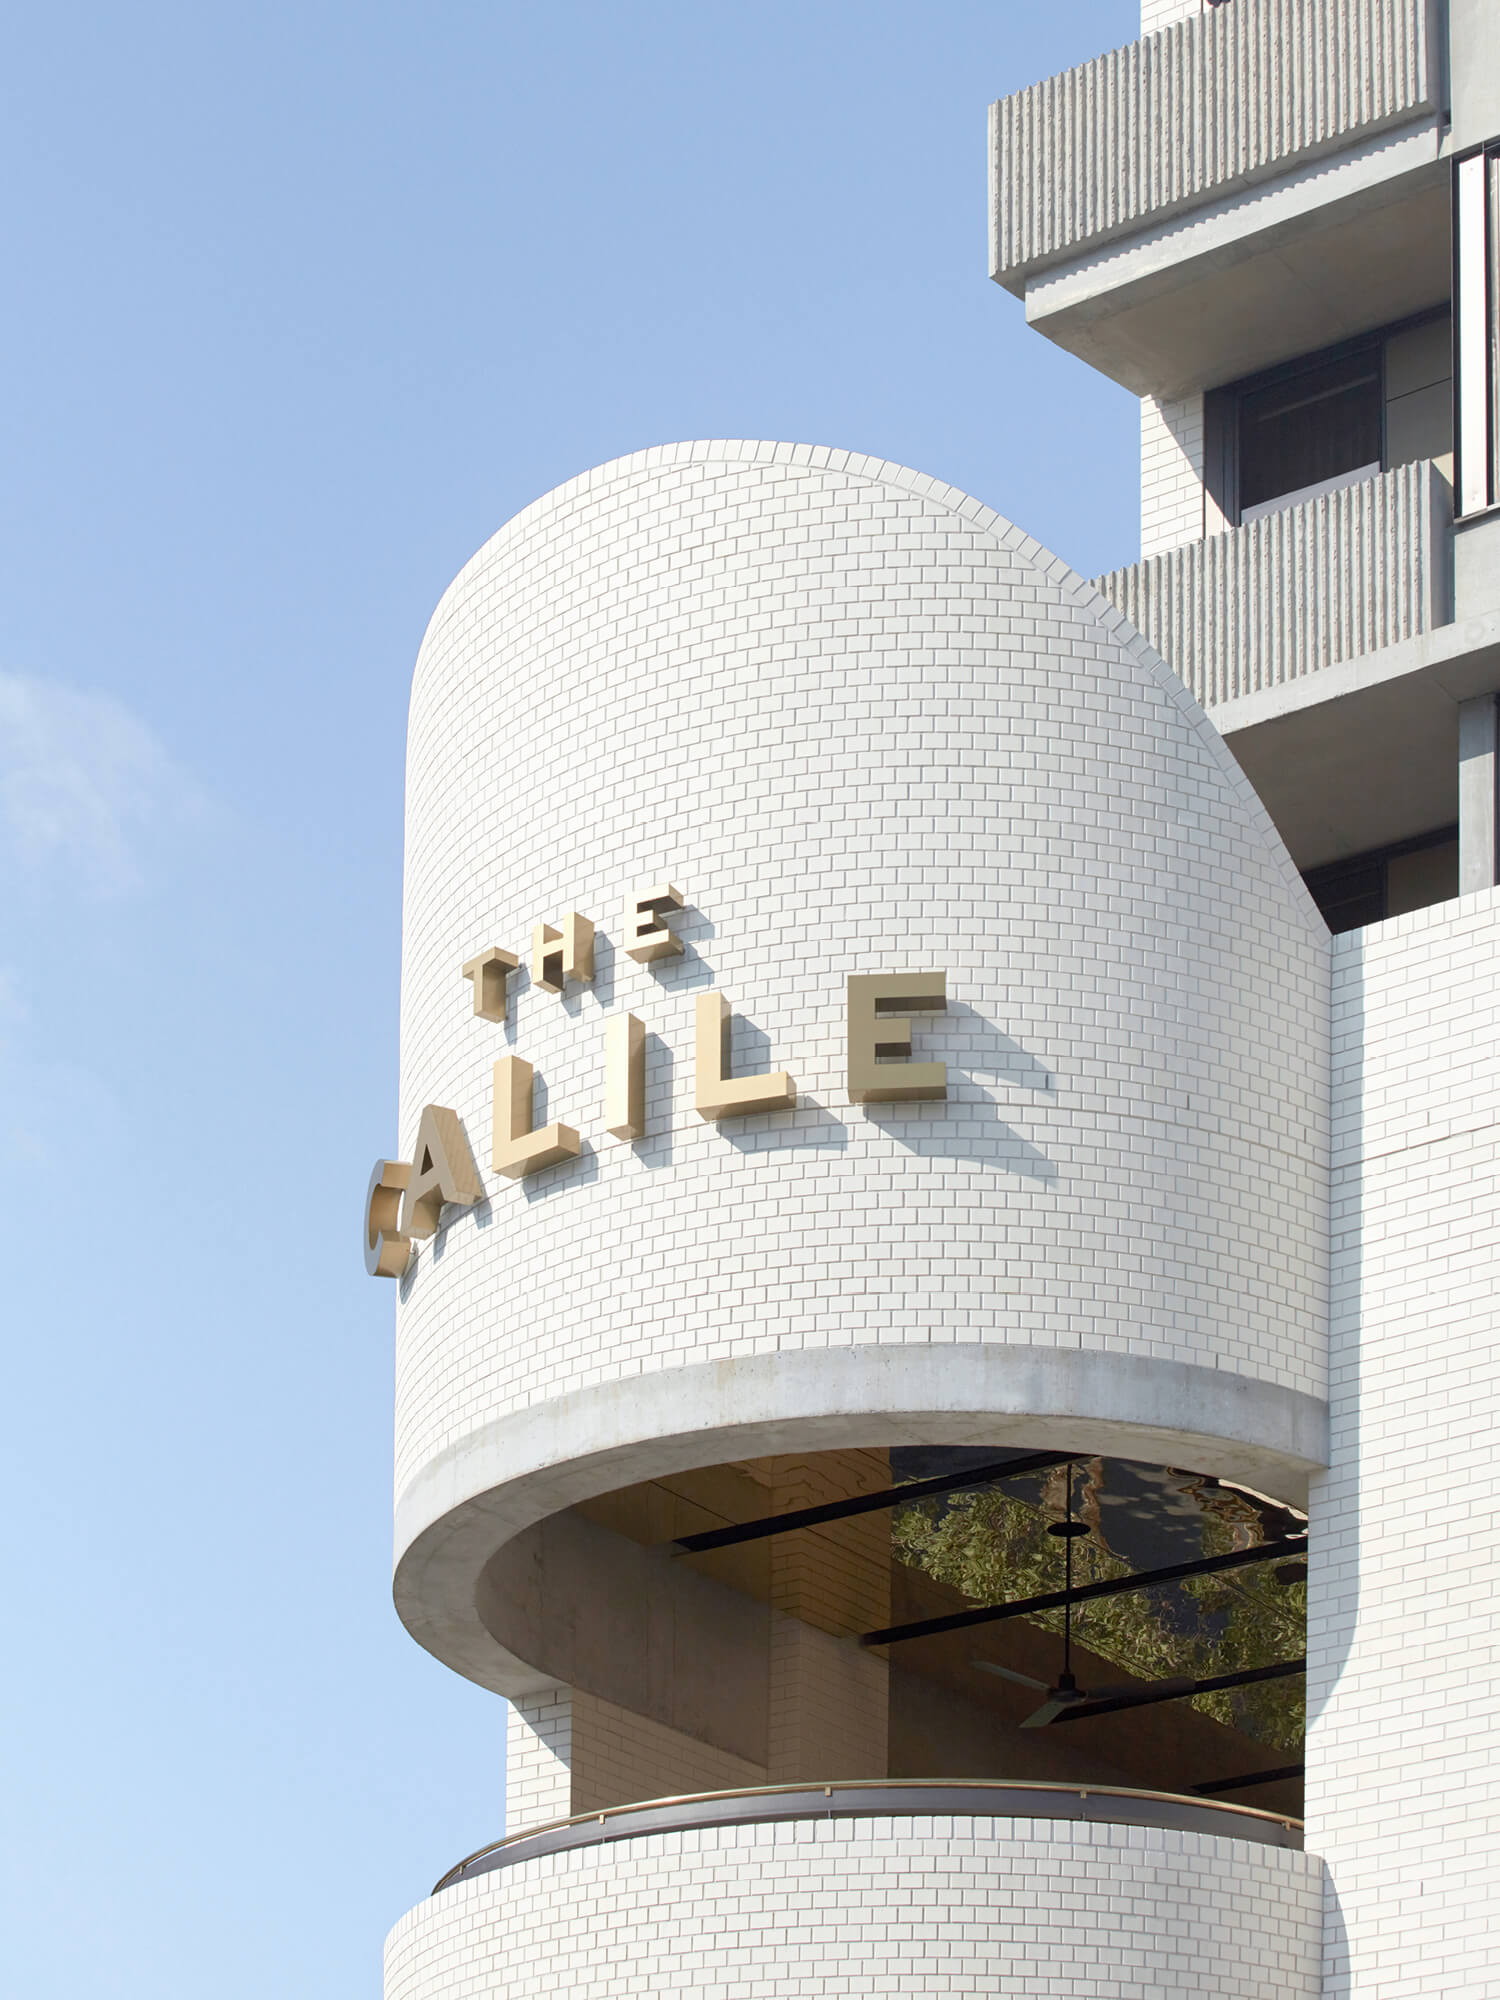 Calile Hotel by Richards and Spence Architects